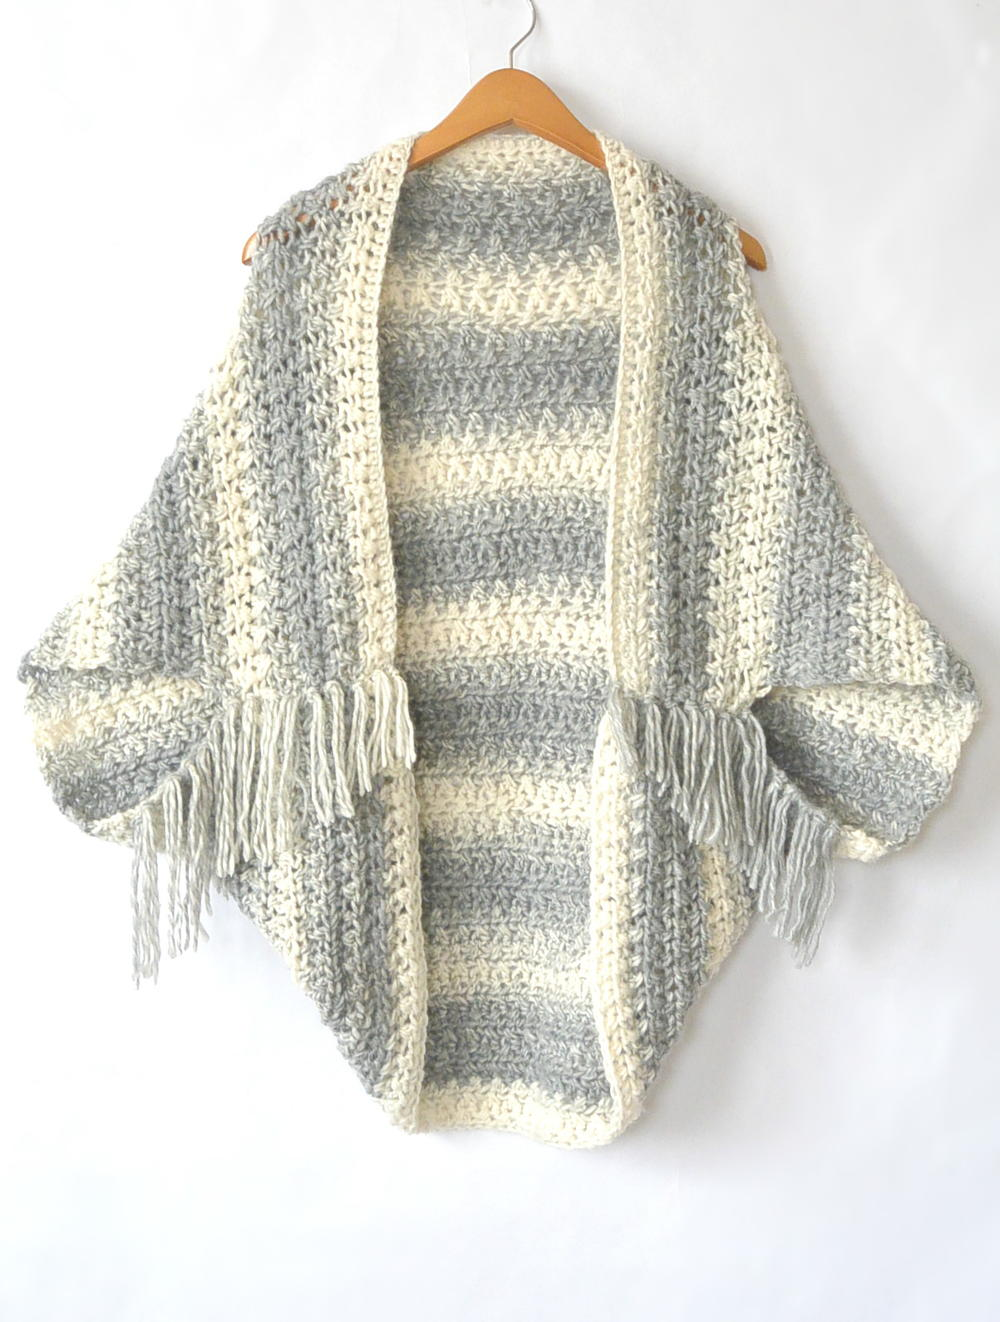 2a6aca2974 Easy Light Frost Crochet Blanket Sweater Shrug